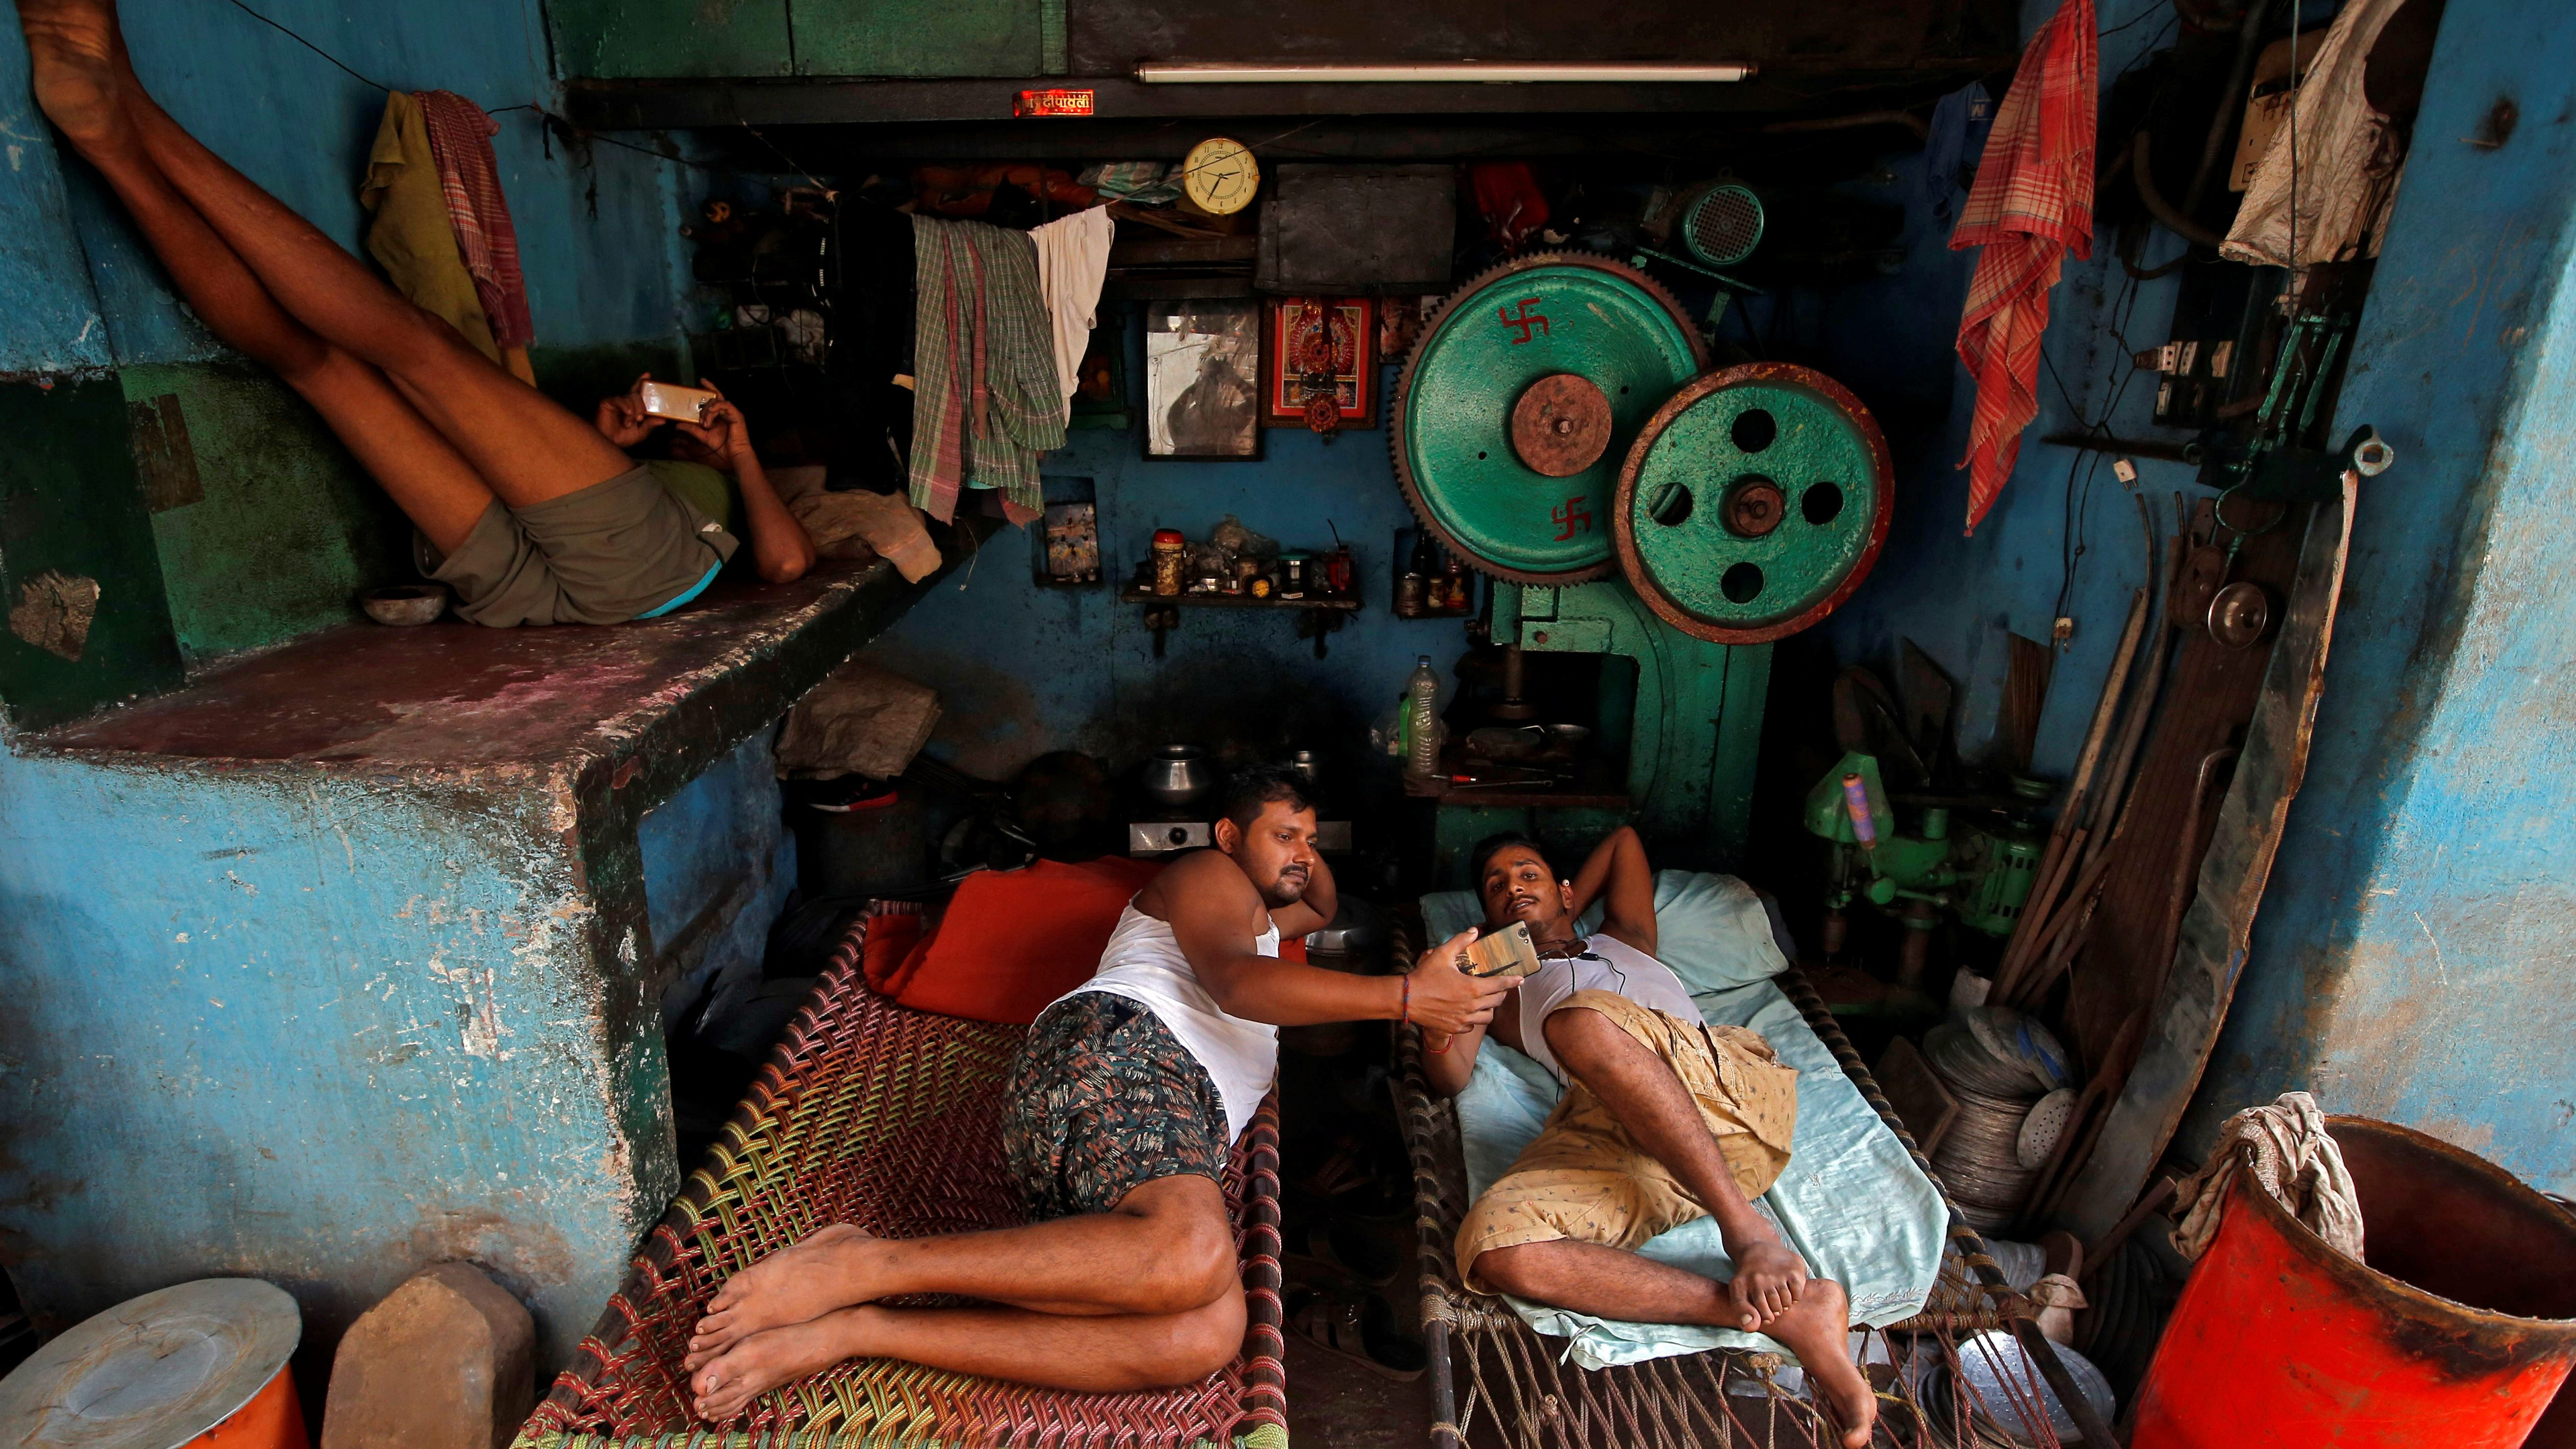 Workers watch their mobile phones as they rest in cots during a break inside a workshop in Kolkata